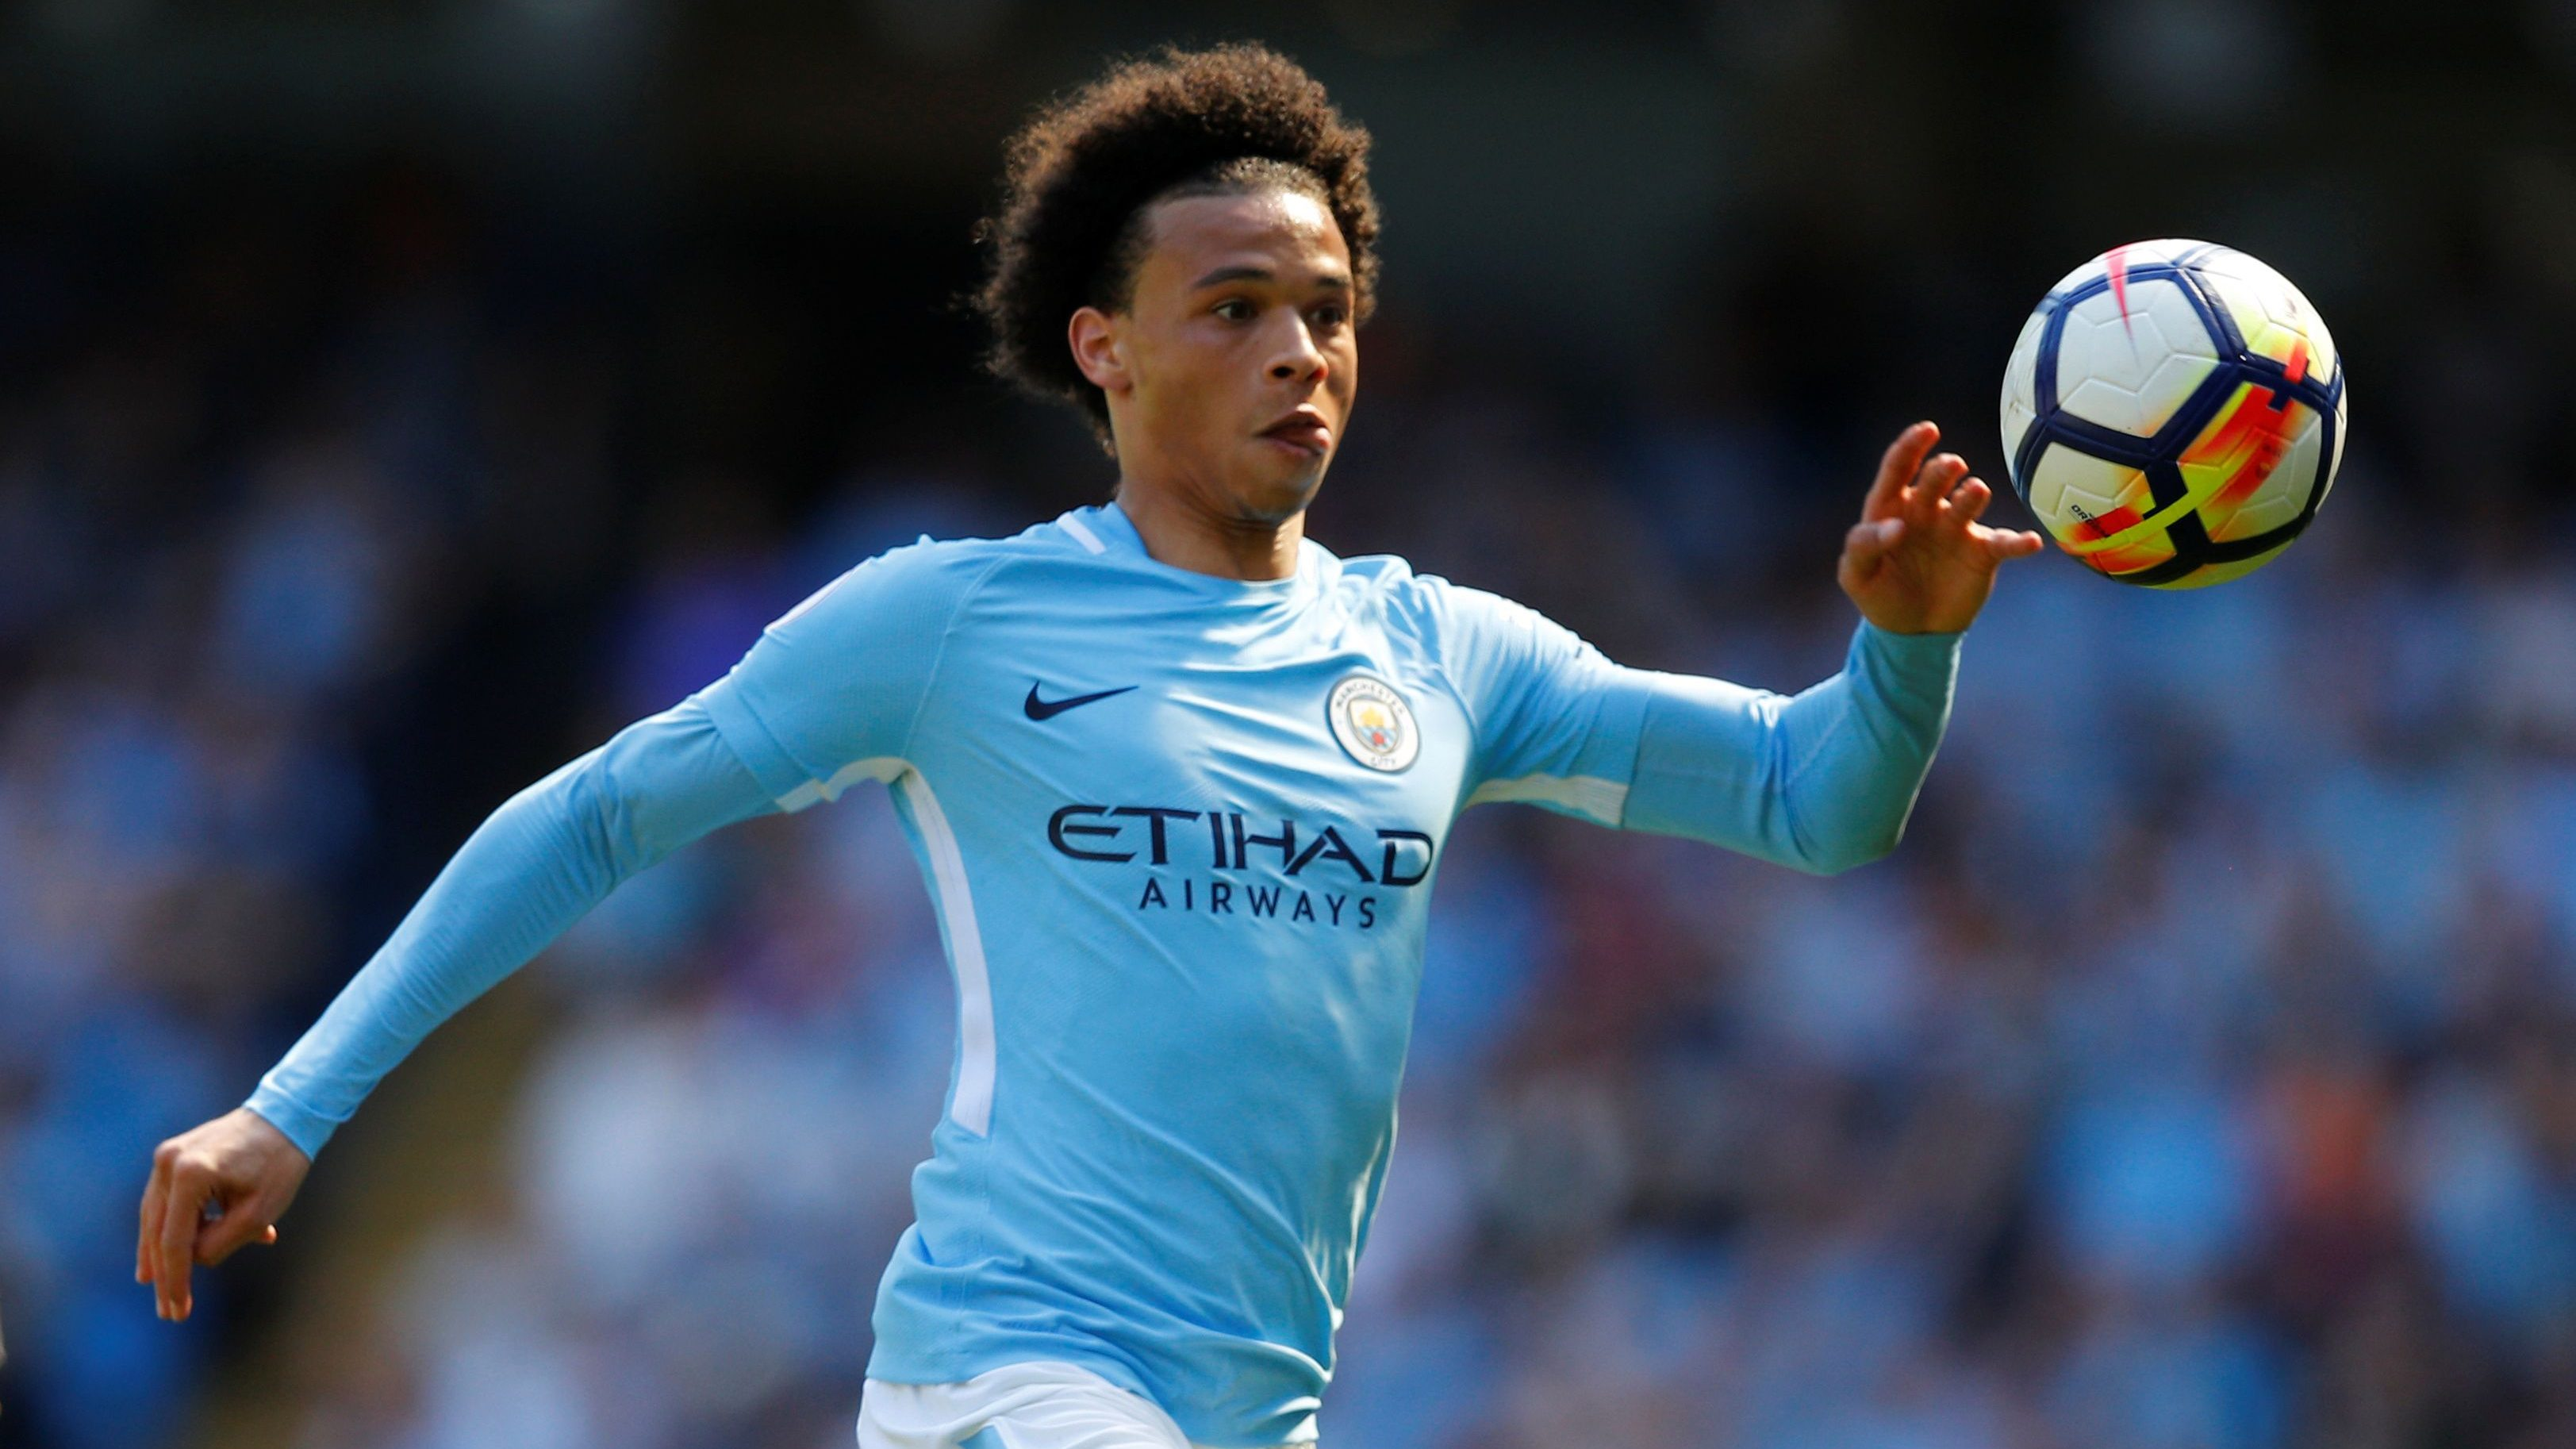 Soccer Football - Premier League - Manchester City vs Huddersfield Town - Etihad Stadium, Manchester, Britain - May 6, 2018   Manchester City's Leroy Sane in action